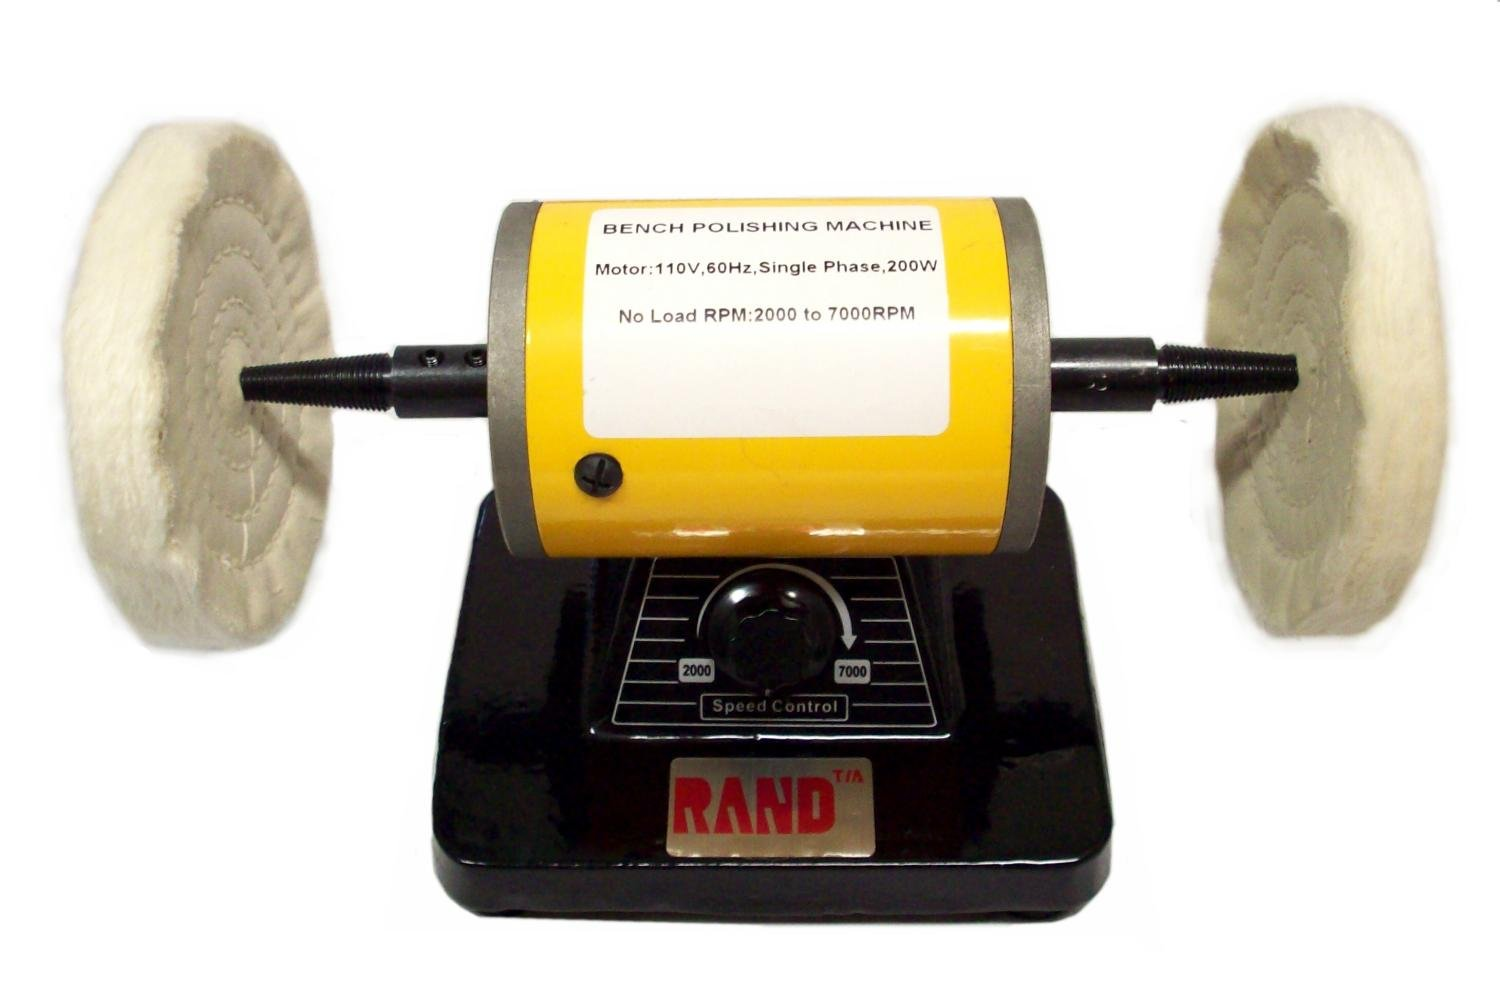 RAND VARIABLE SPEED BENCH POLISHER / BUFFER- Polishing/Buffing Machine 5'' diameter jewelry